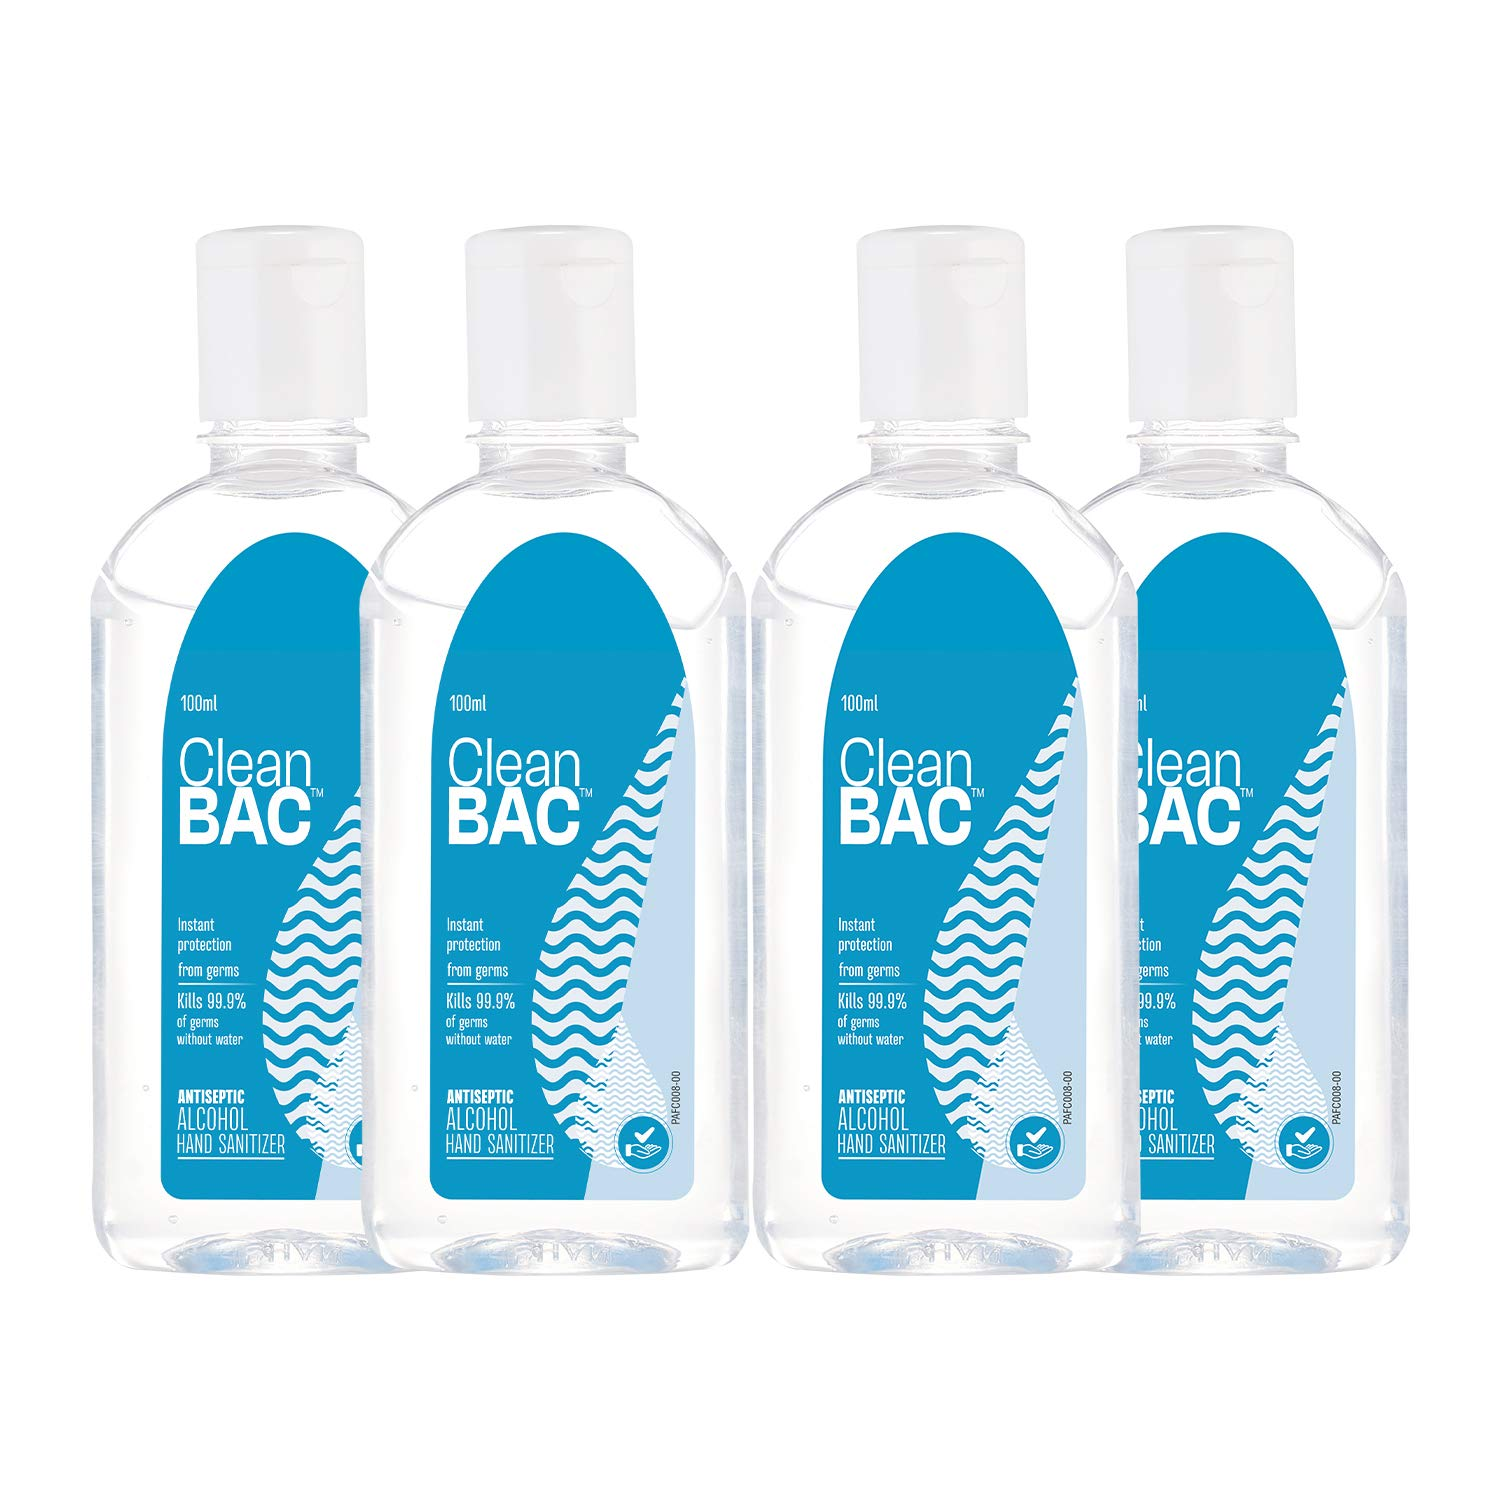 Loot Deal Clean BAC Hand Sanitizer, Pack of 4